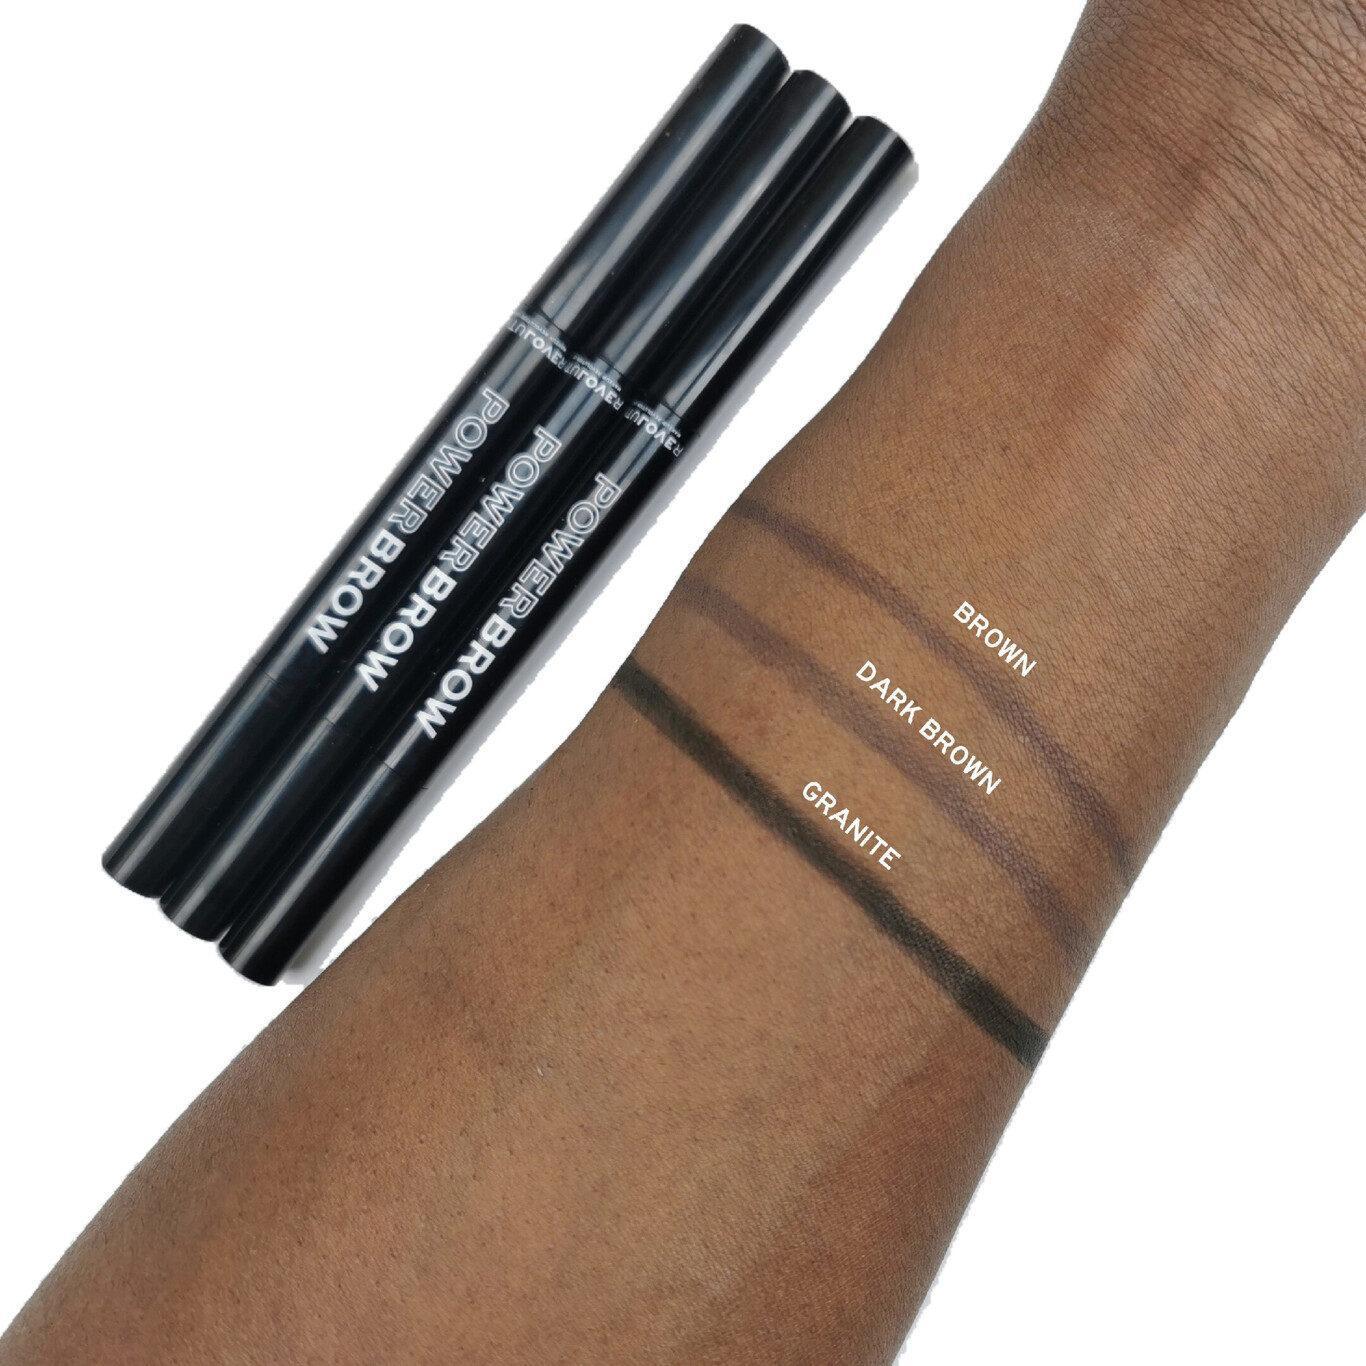 ReLove by Revolution Power Brow Pencil Arm Swatch